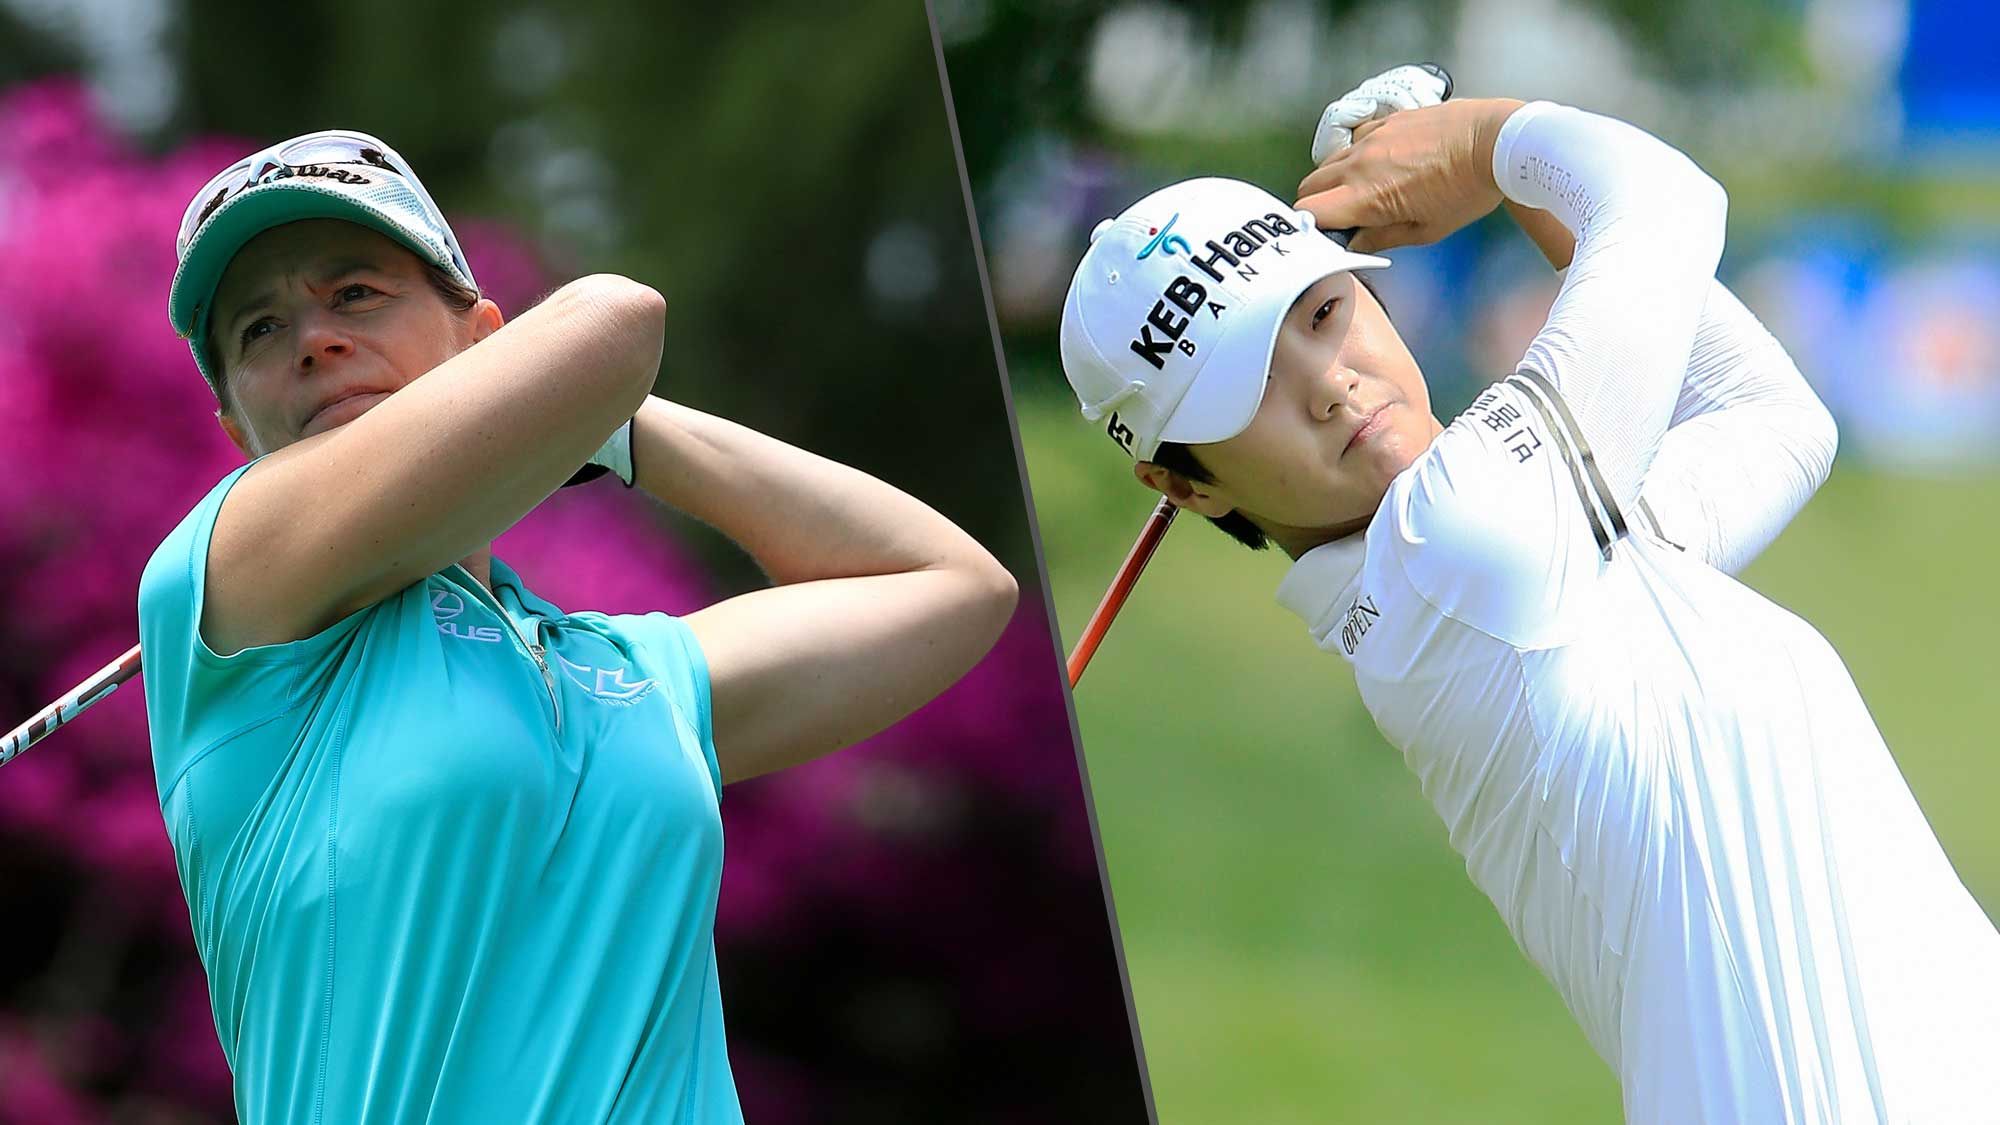 Annika Sorenstam On Sung Hyun Park's Major Win